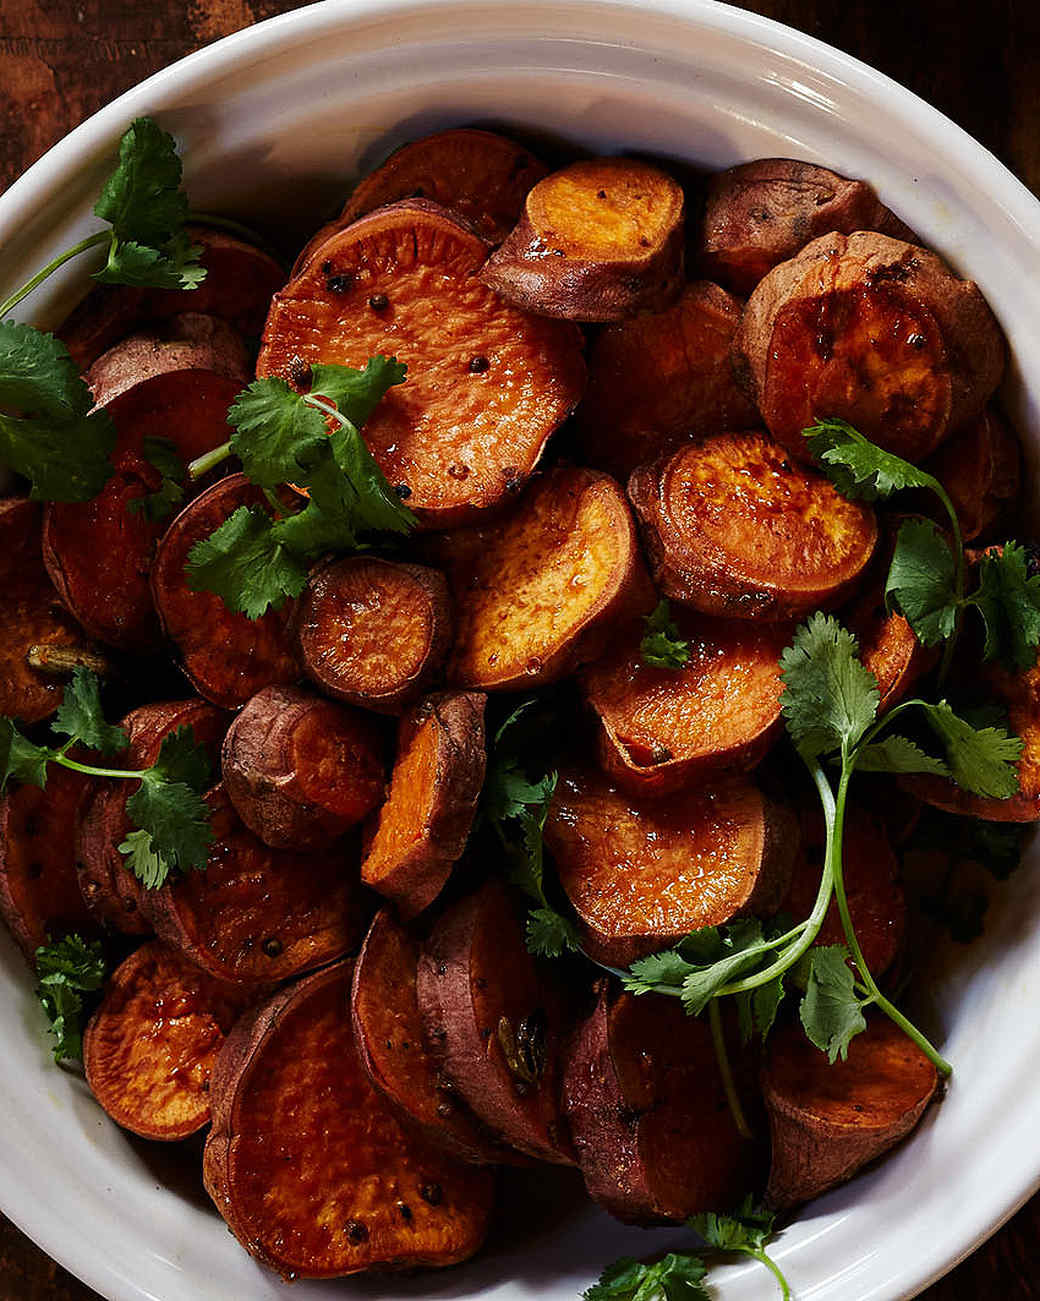 Cardamom-Scented Sweet Potato Rounds with Cilantro